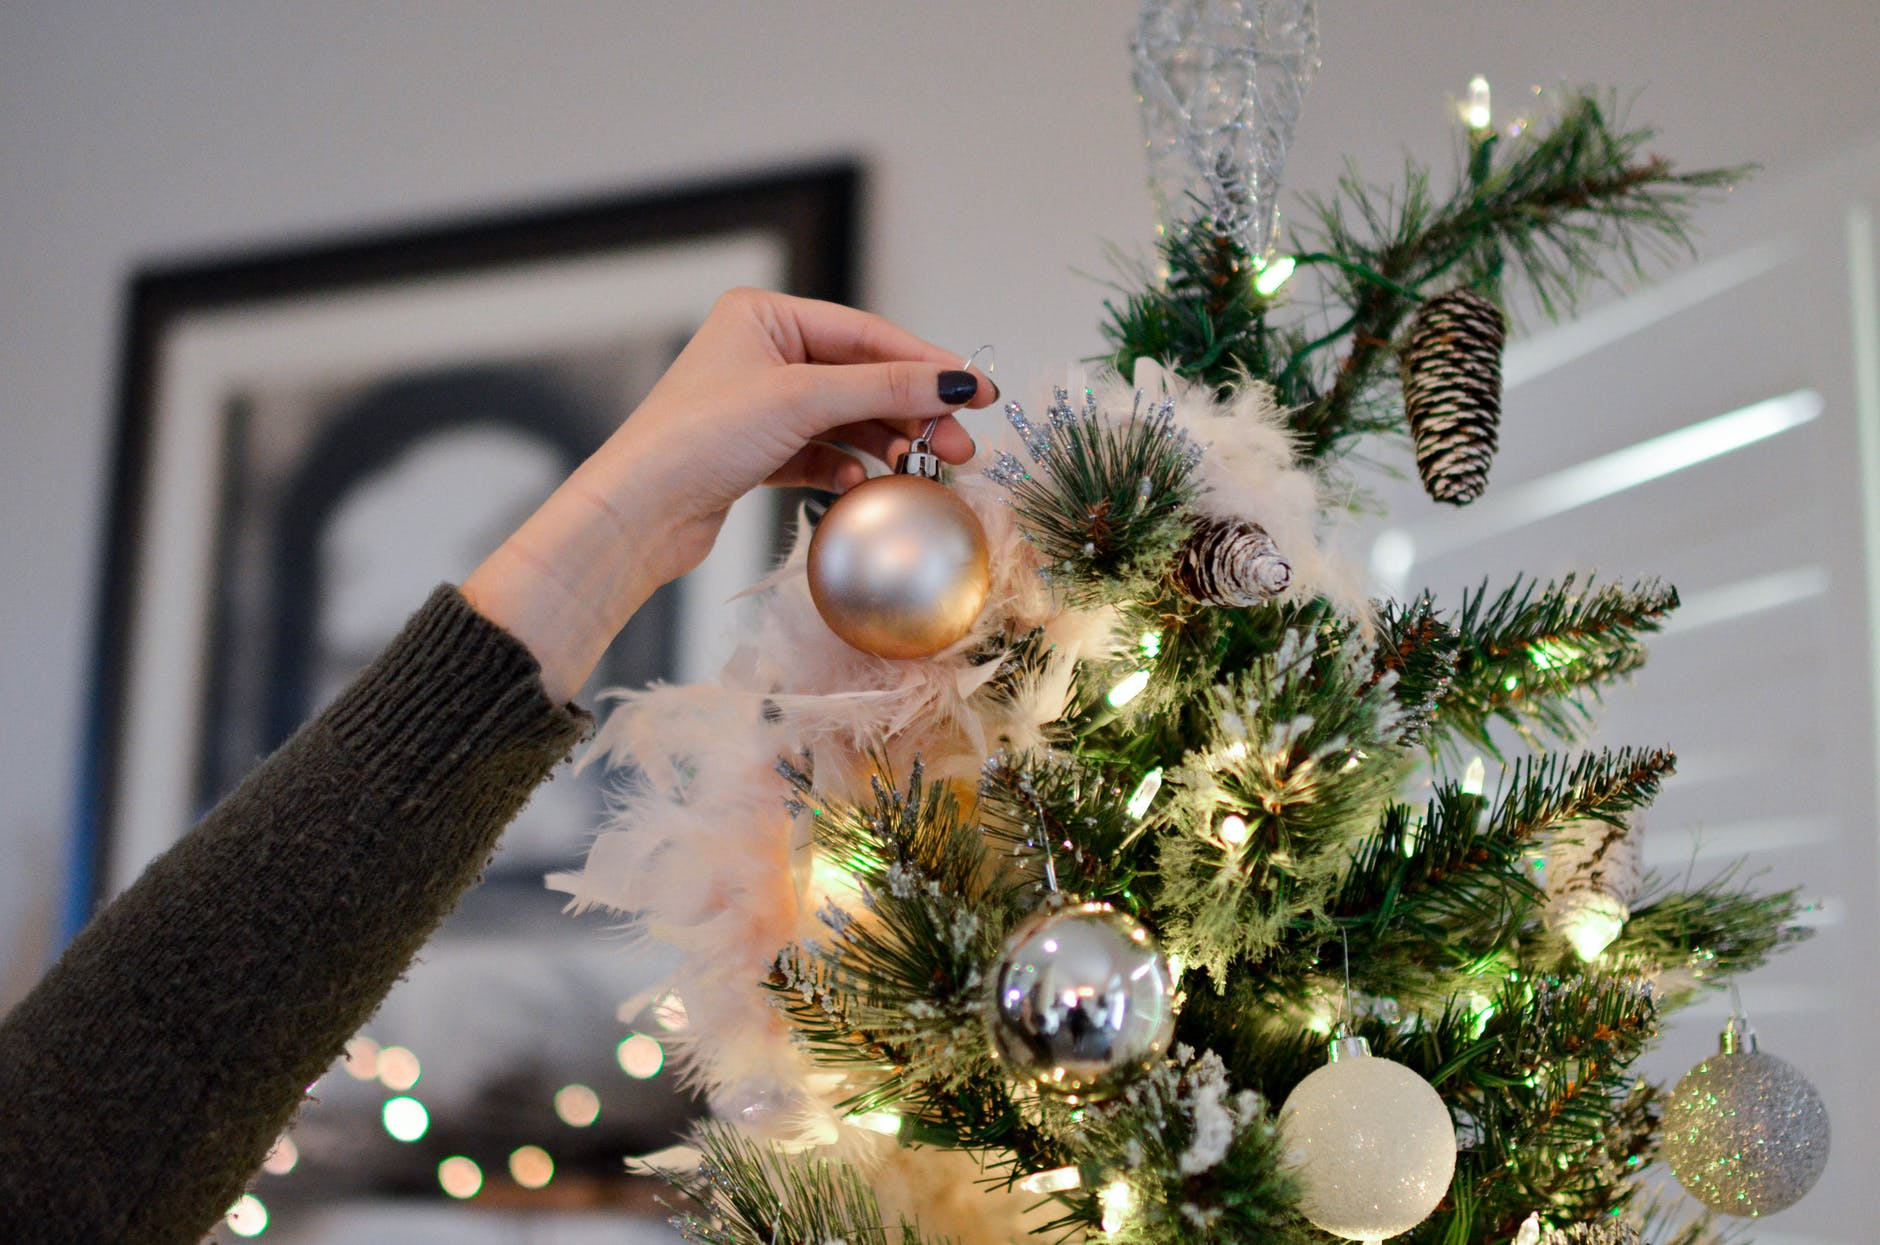 Senior Safety - A Woman's Hand Placing An Ornament On A Tree